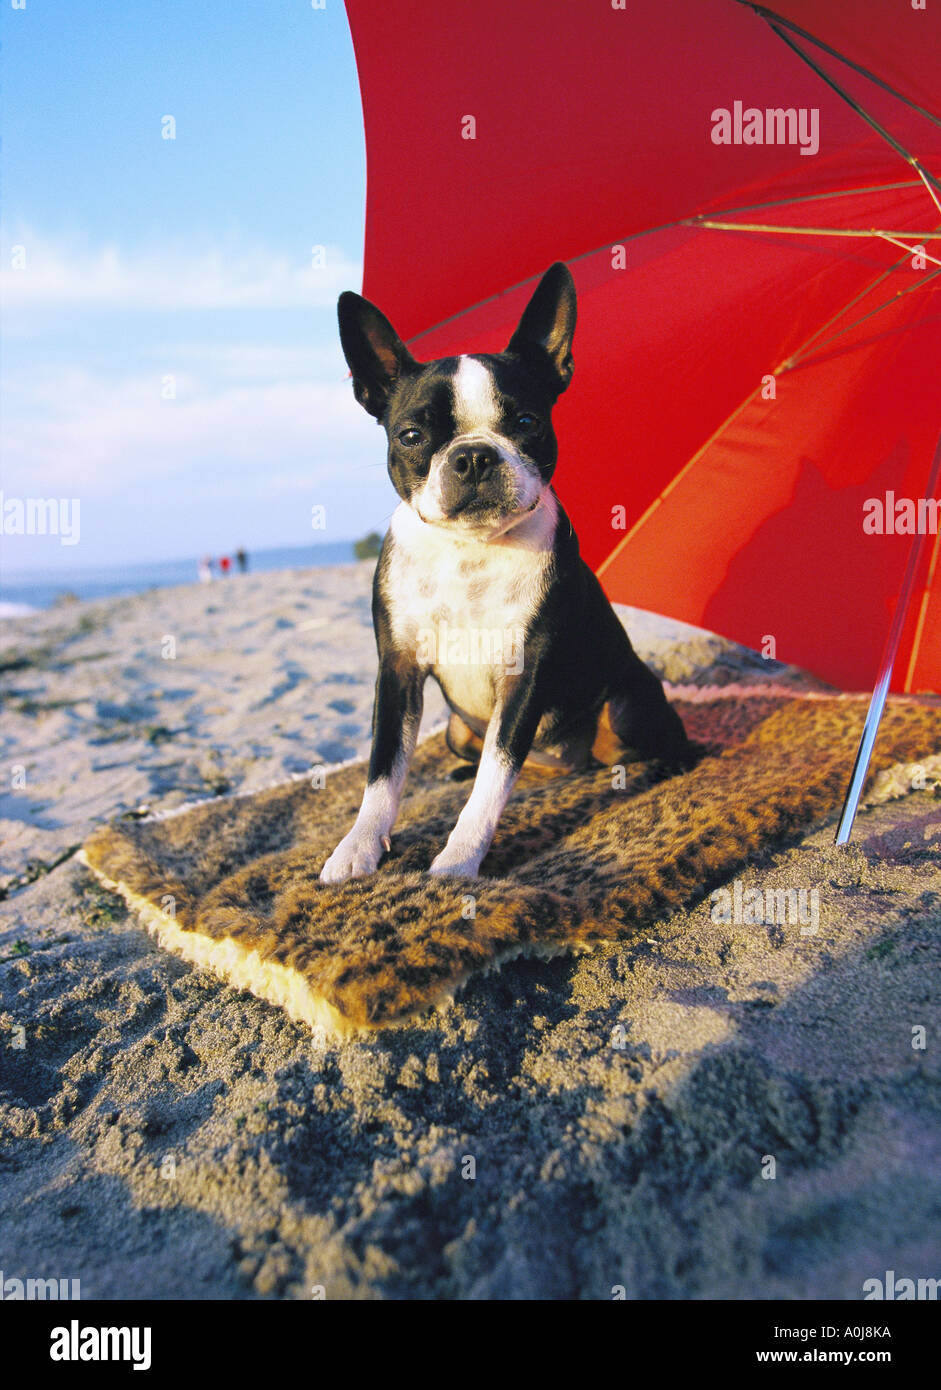 Boston Terrier at the beach - Stock Image